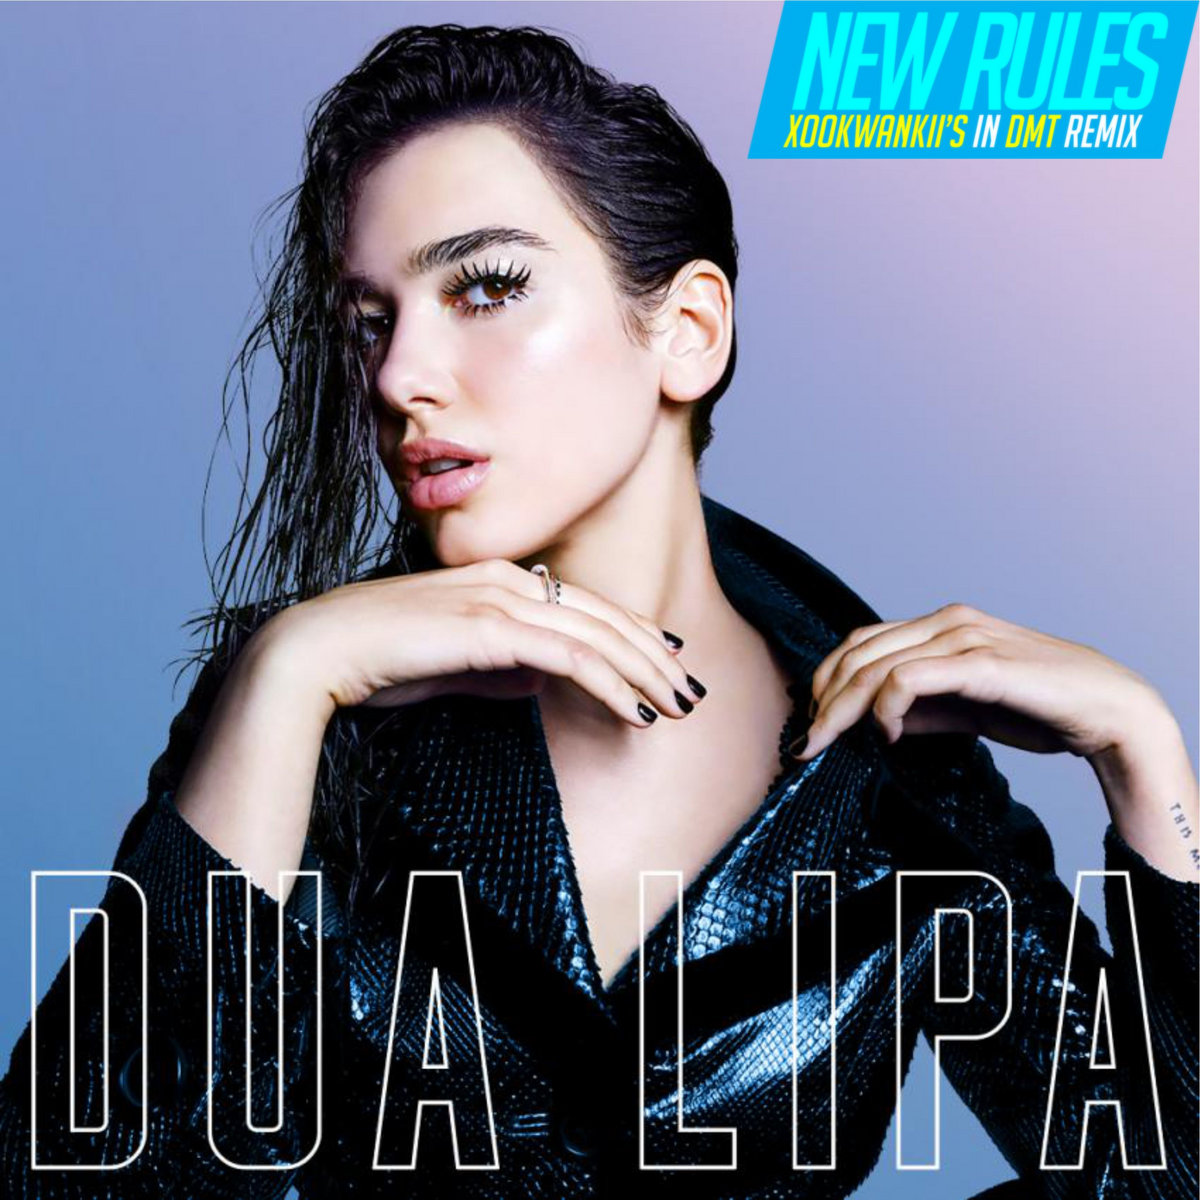 Dua lipa new rules xookwankiis in dmt remix xookwankii by xookwankii stopboris Gallery